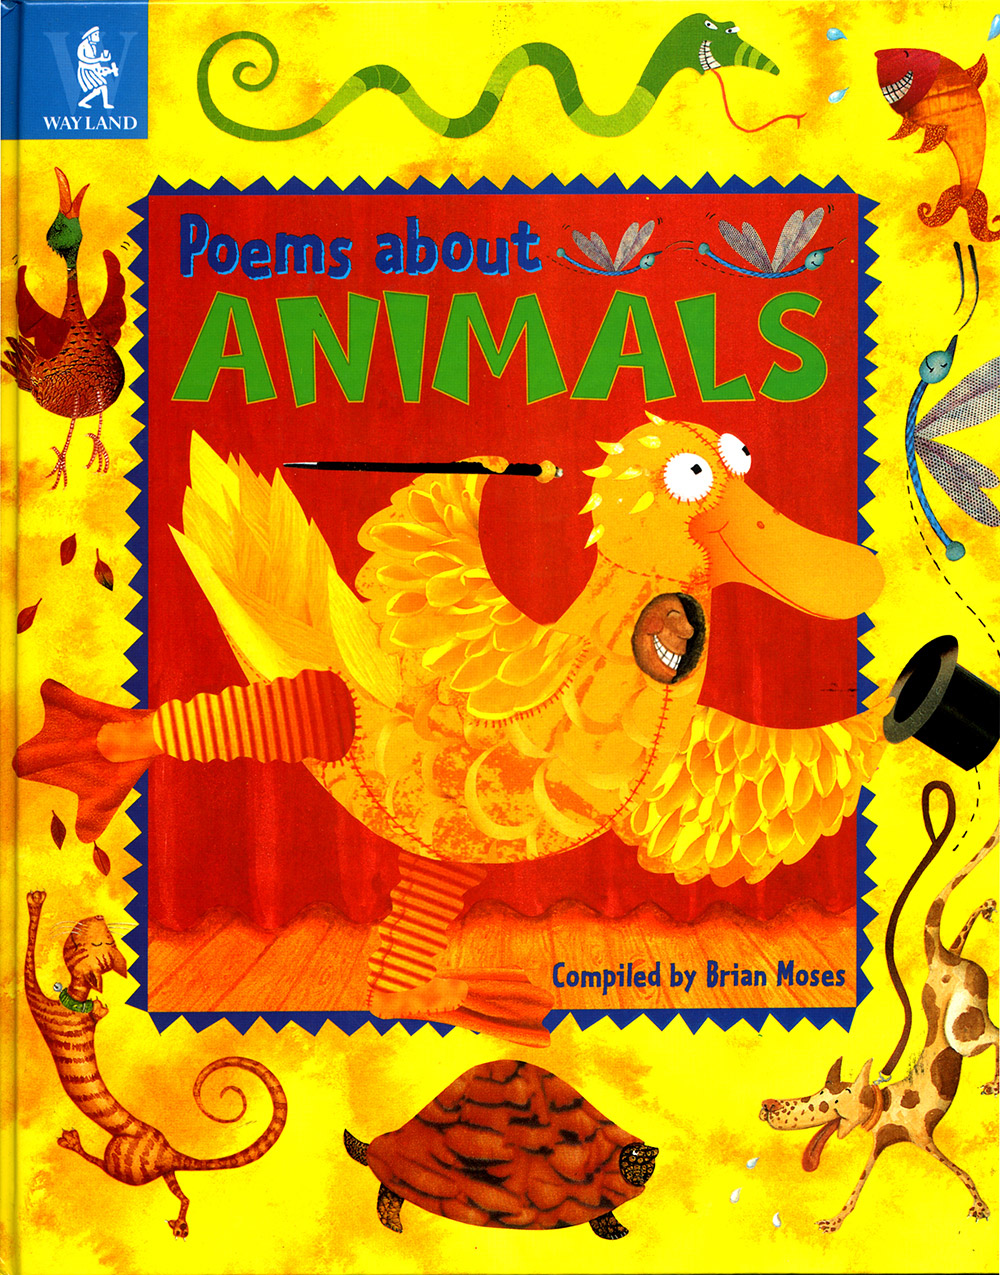 Poems about Animals book cover design